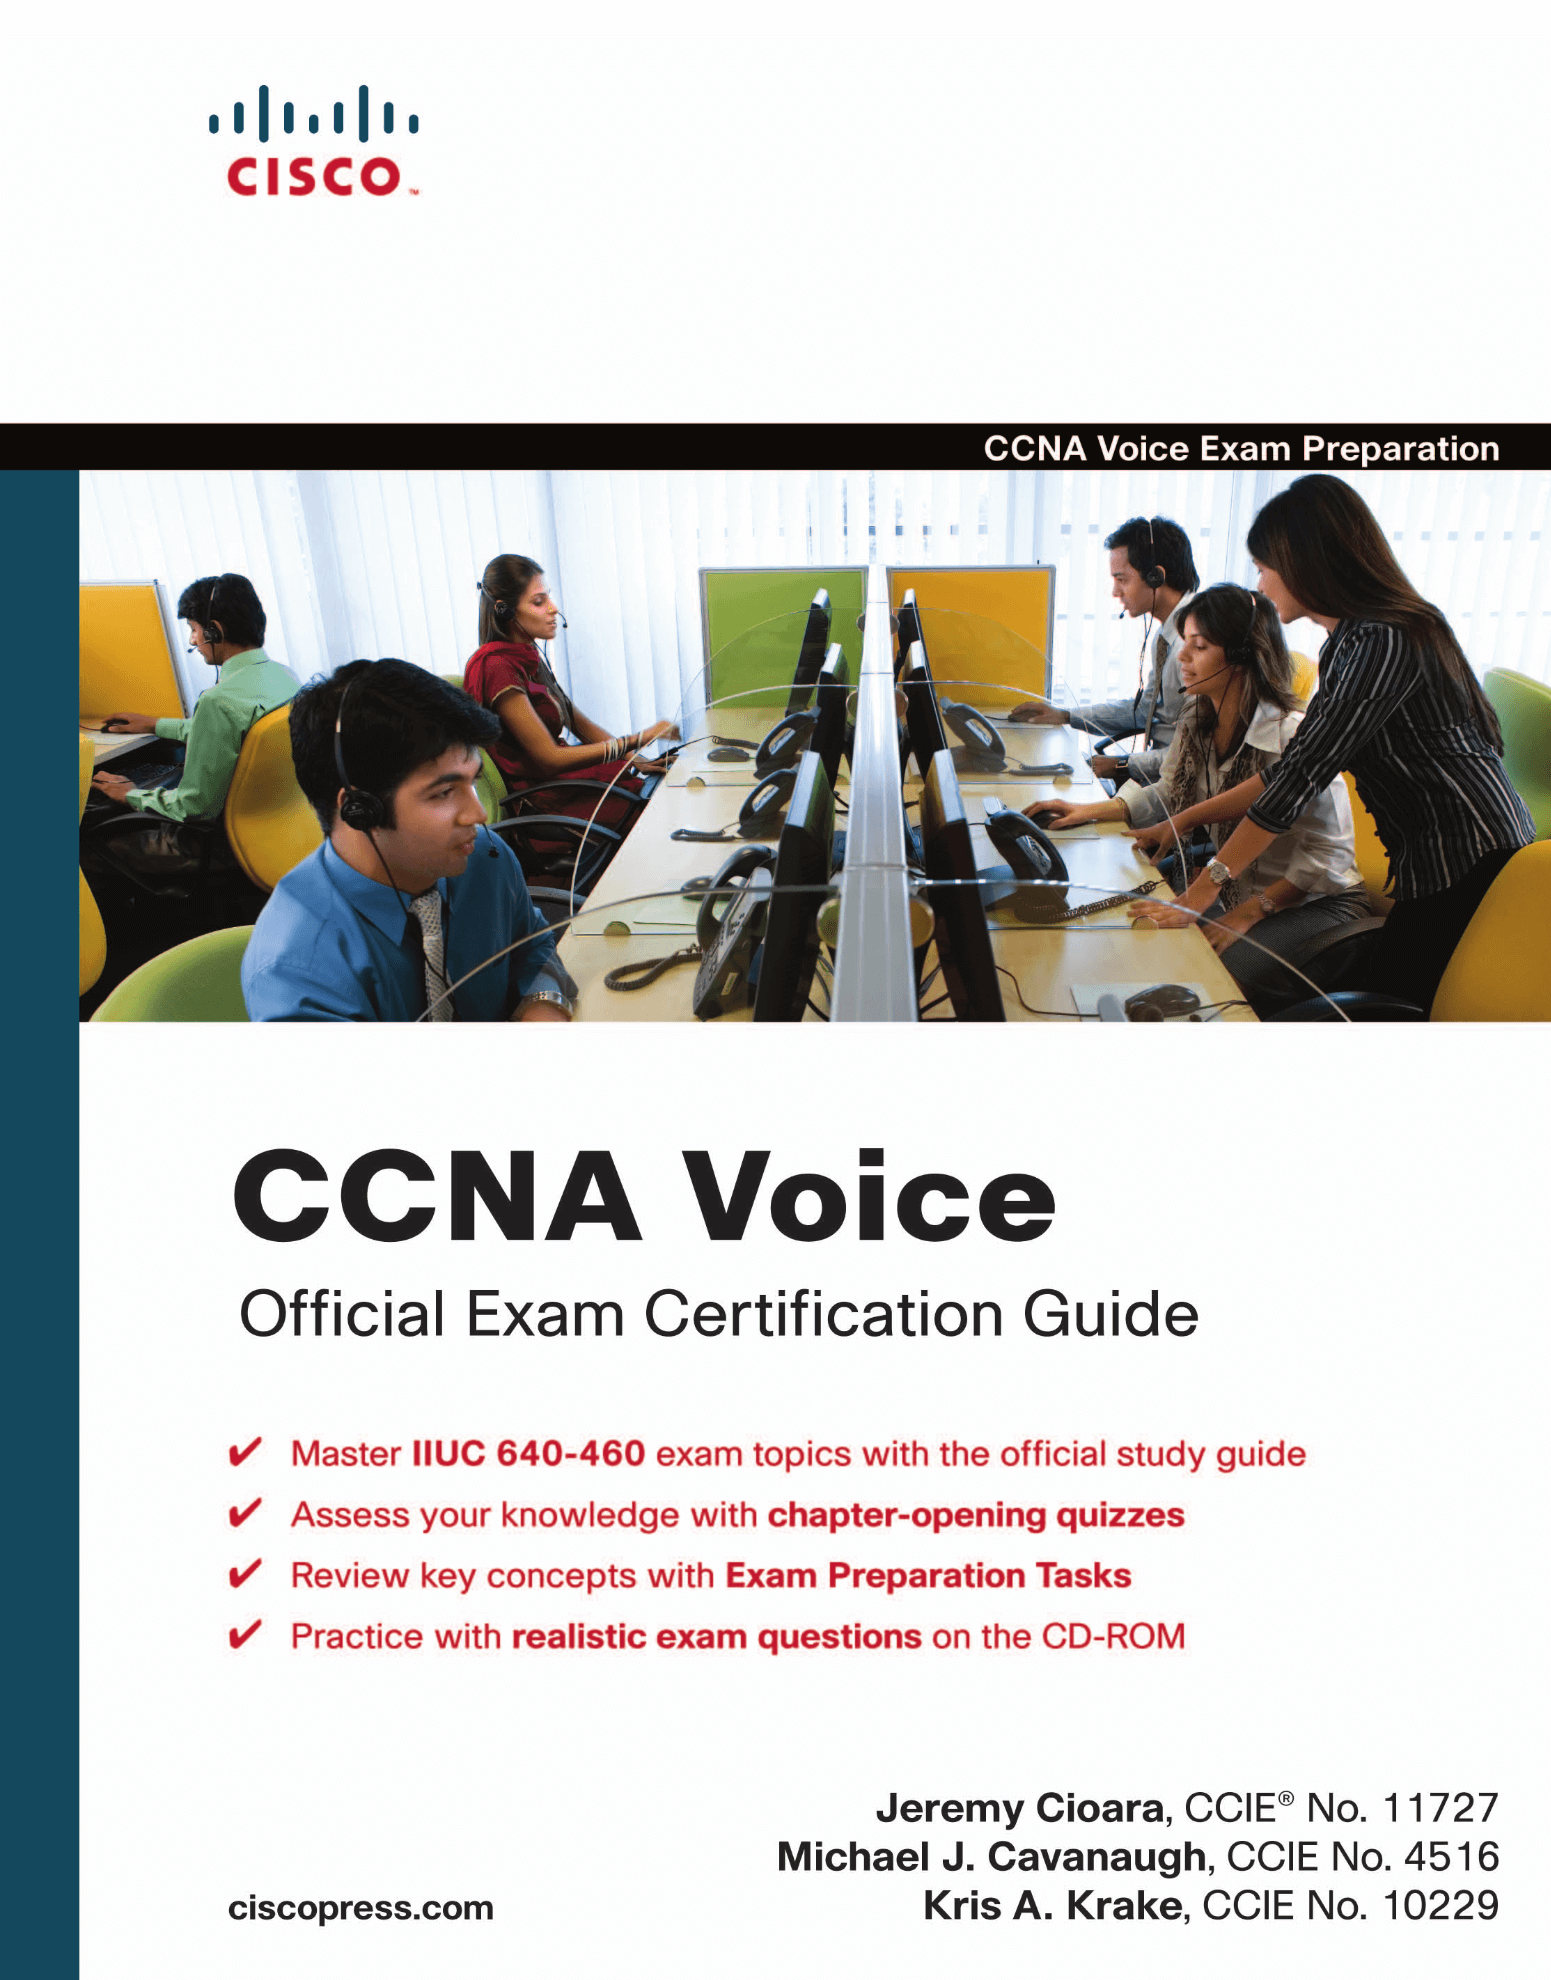 CCNA Voice Official Exam Certification Guide